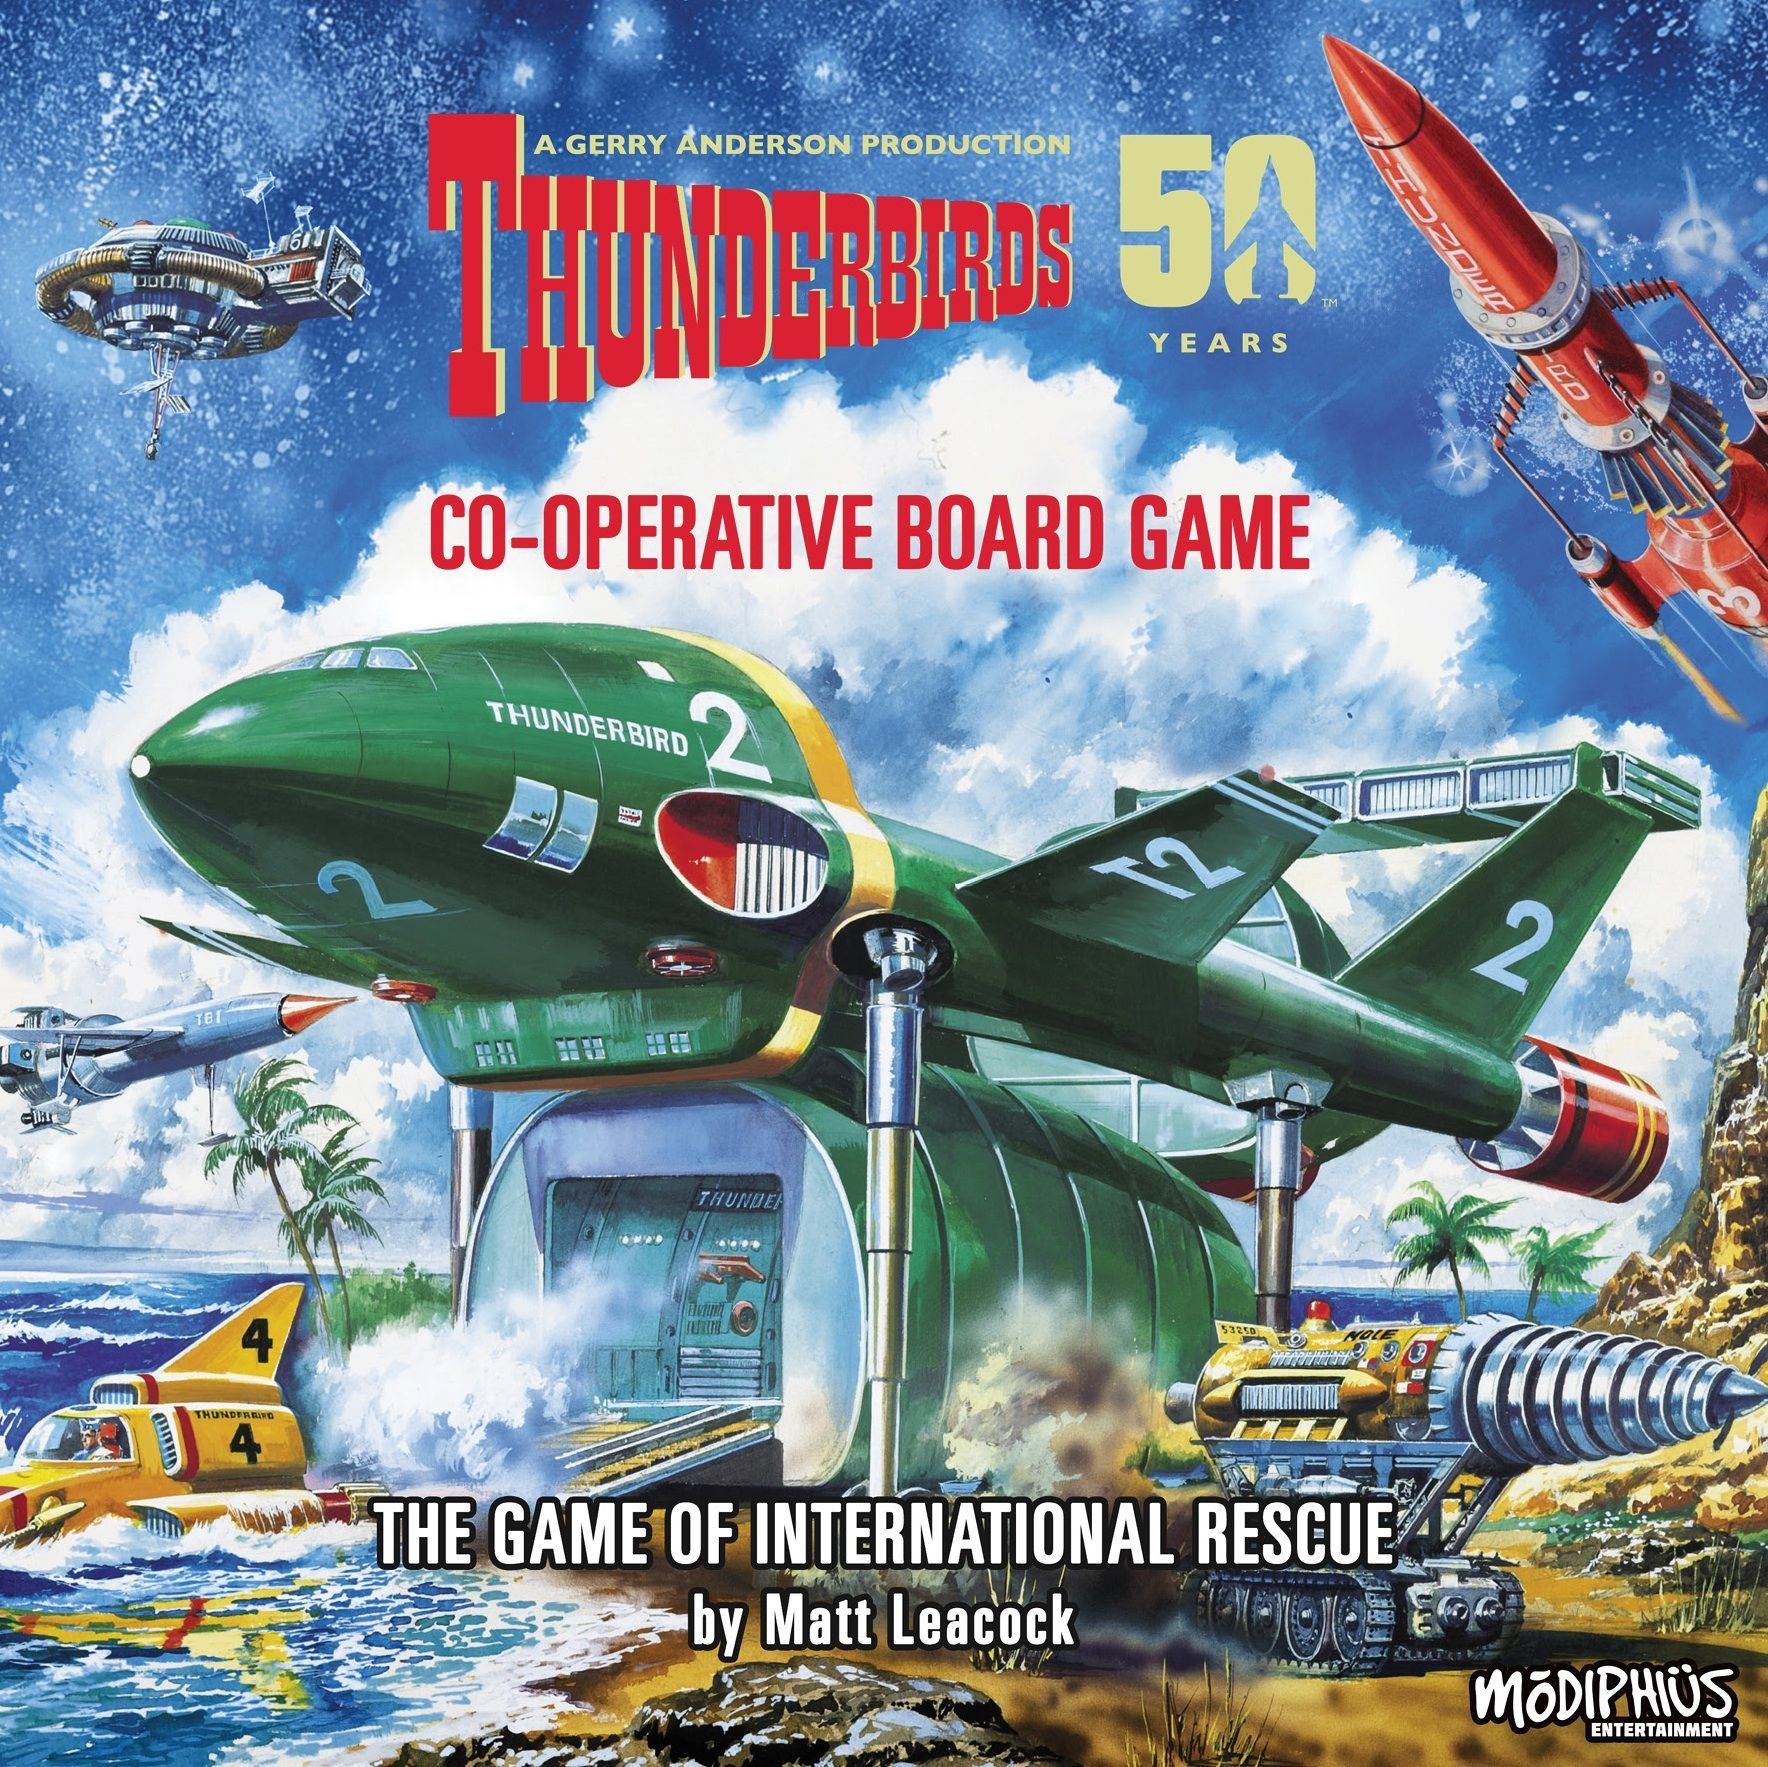 Main image for Thunderbirds